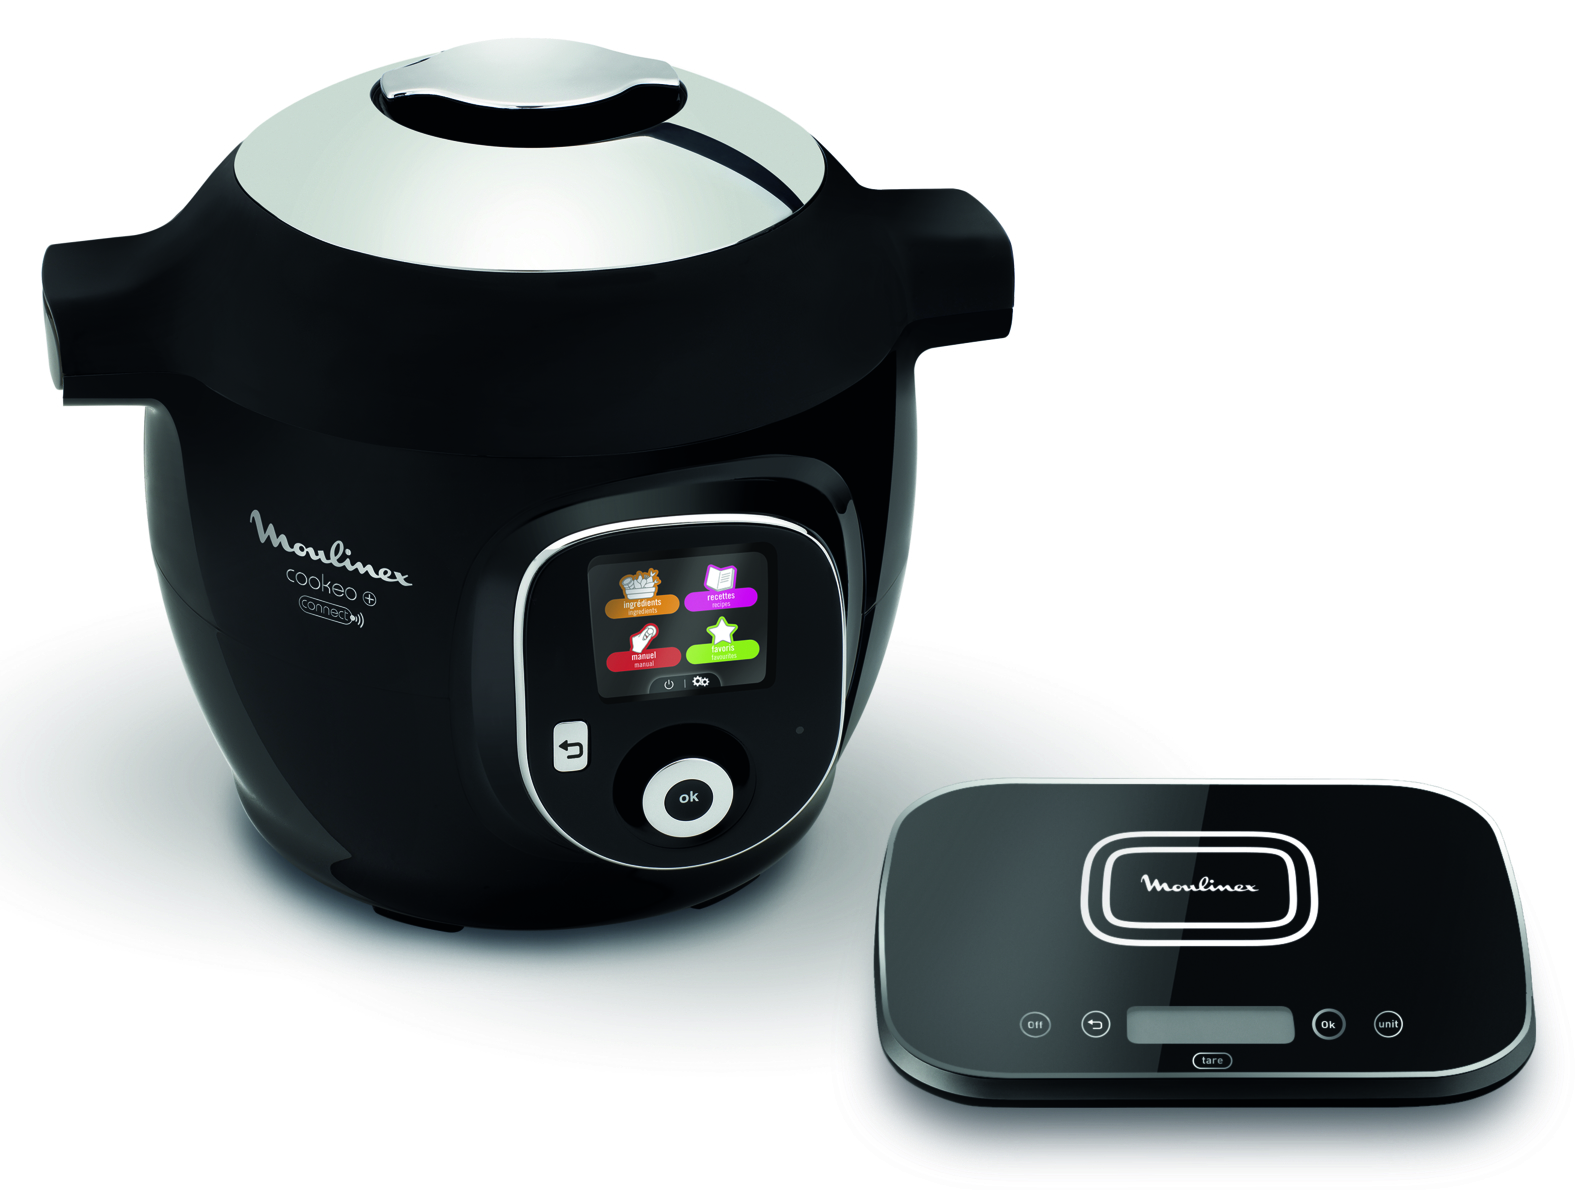 Moulinex Ce859800 Cookeo